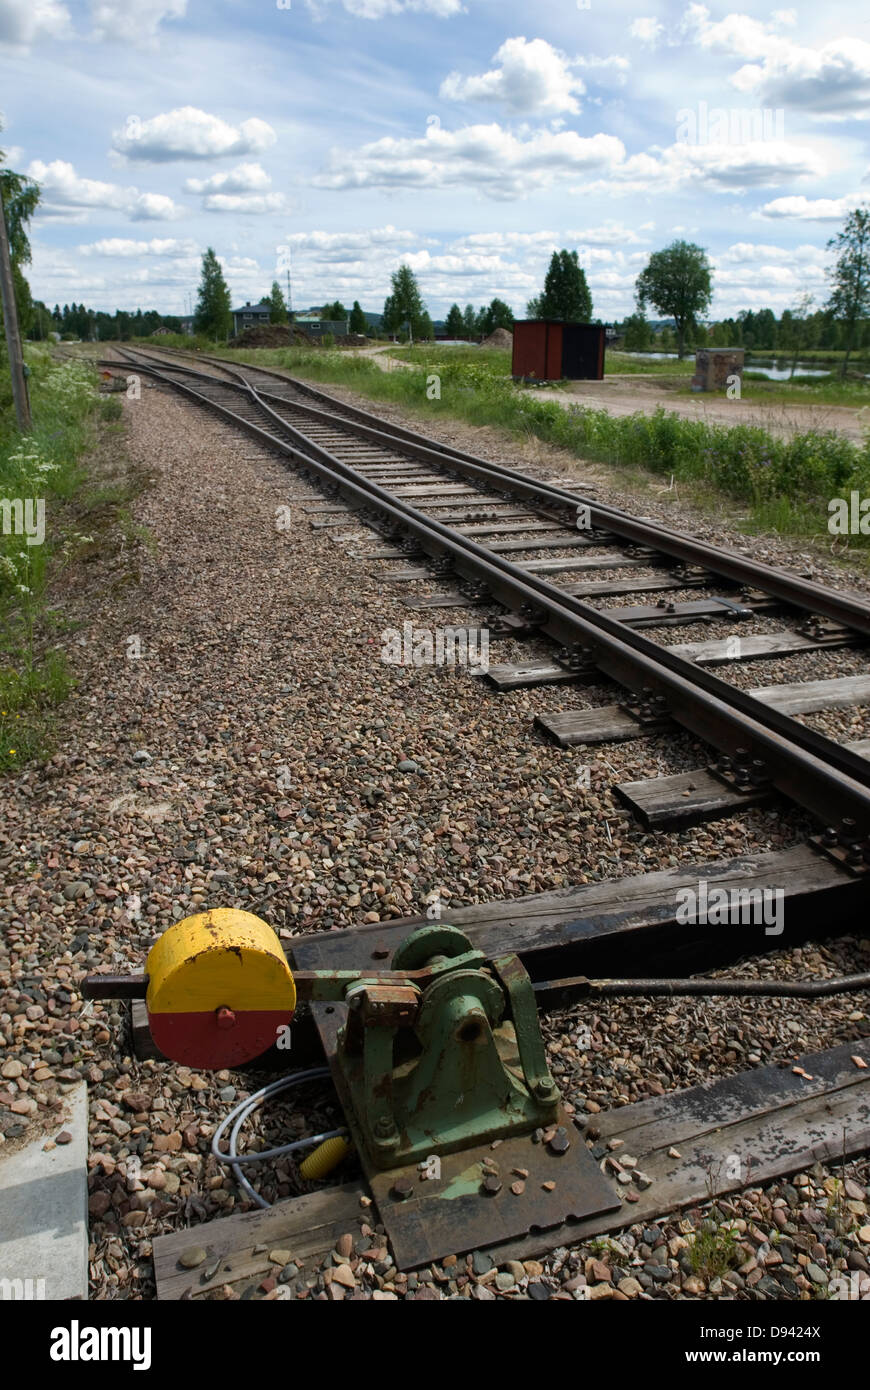 Switch on railroad track - Stock Image